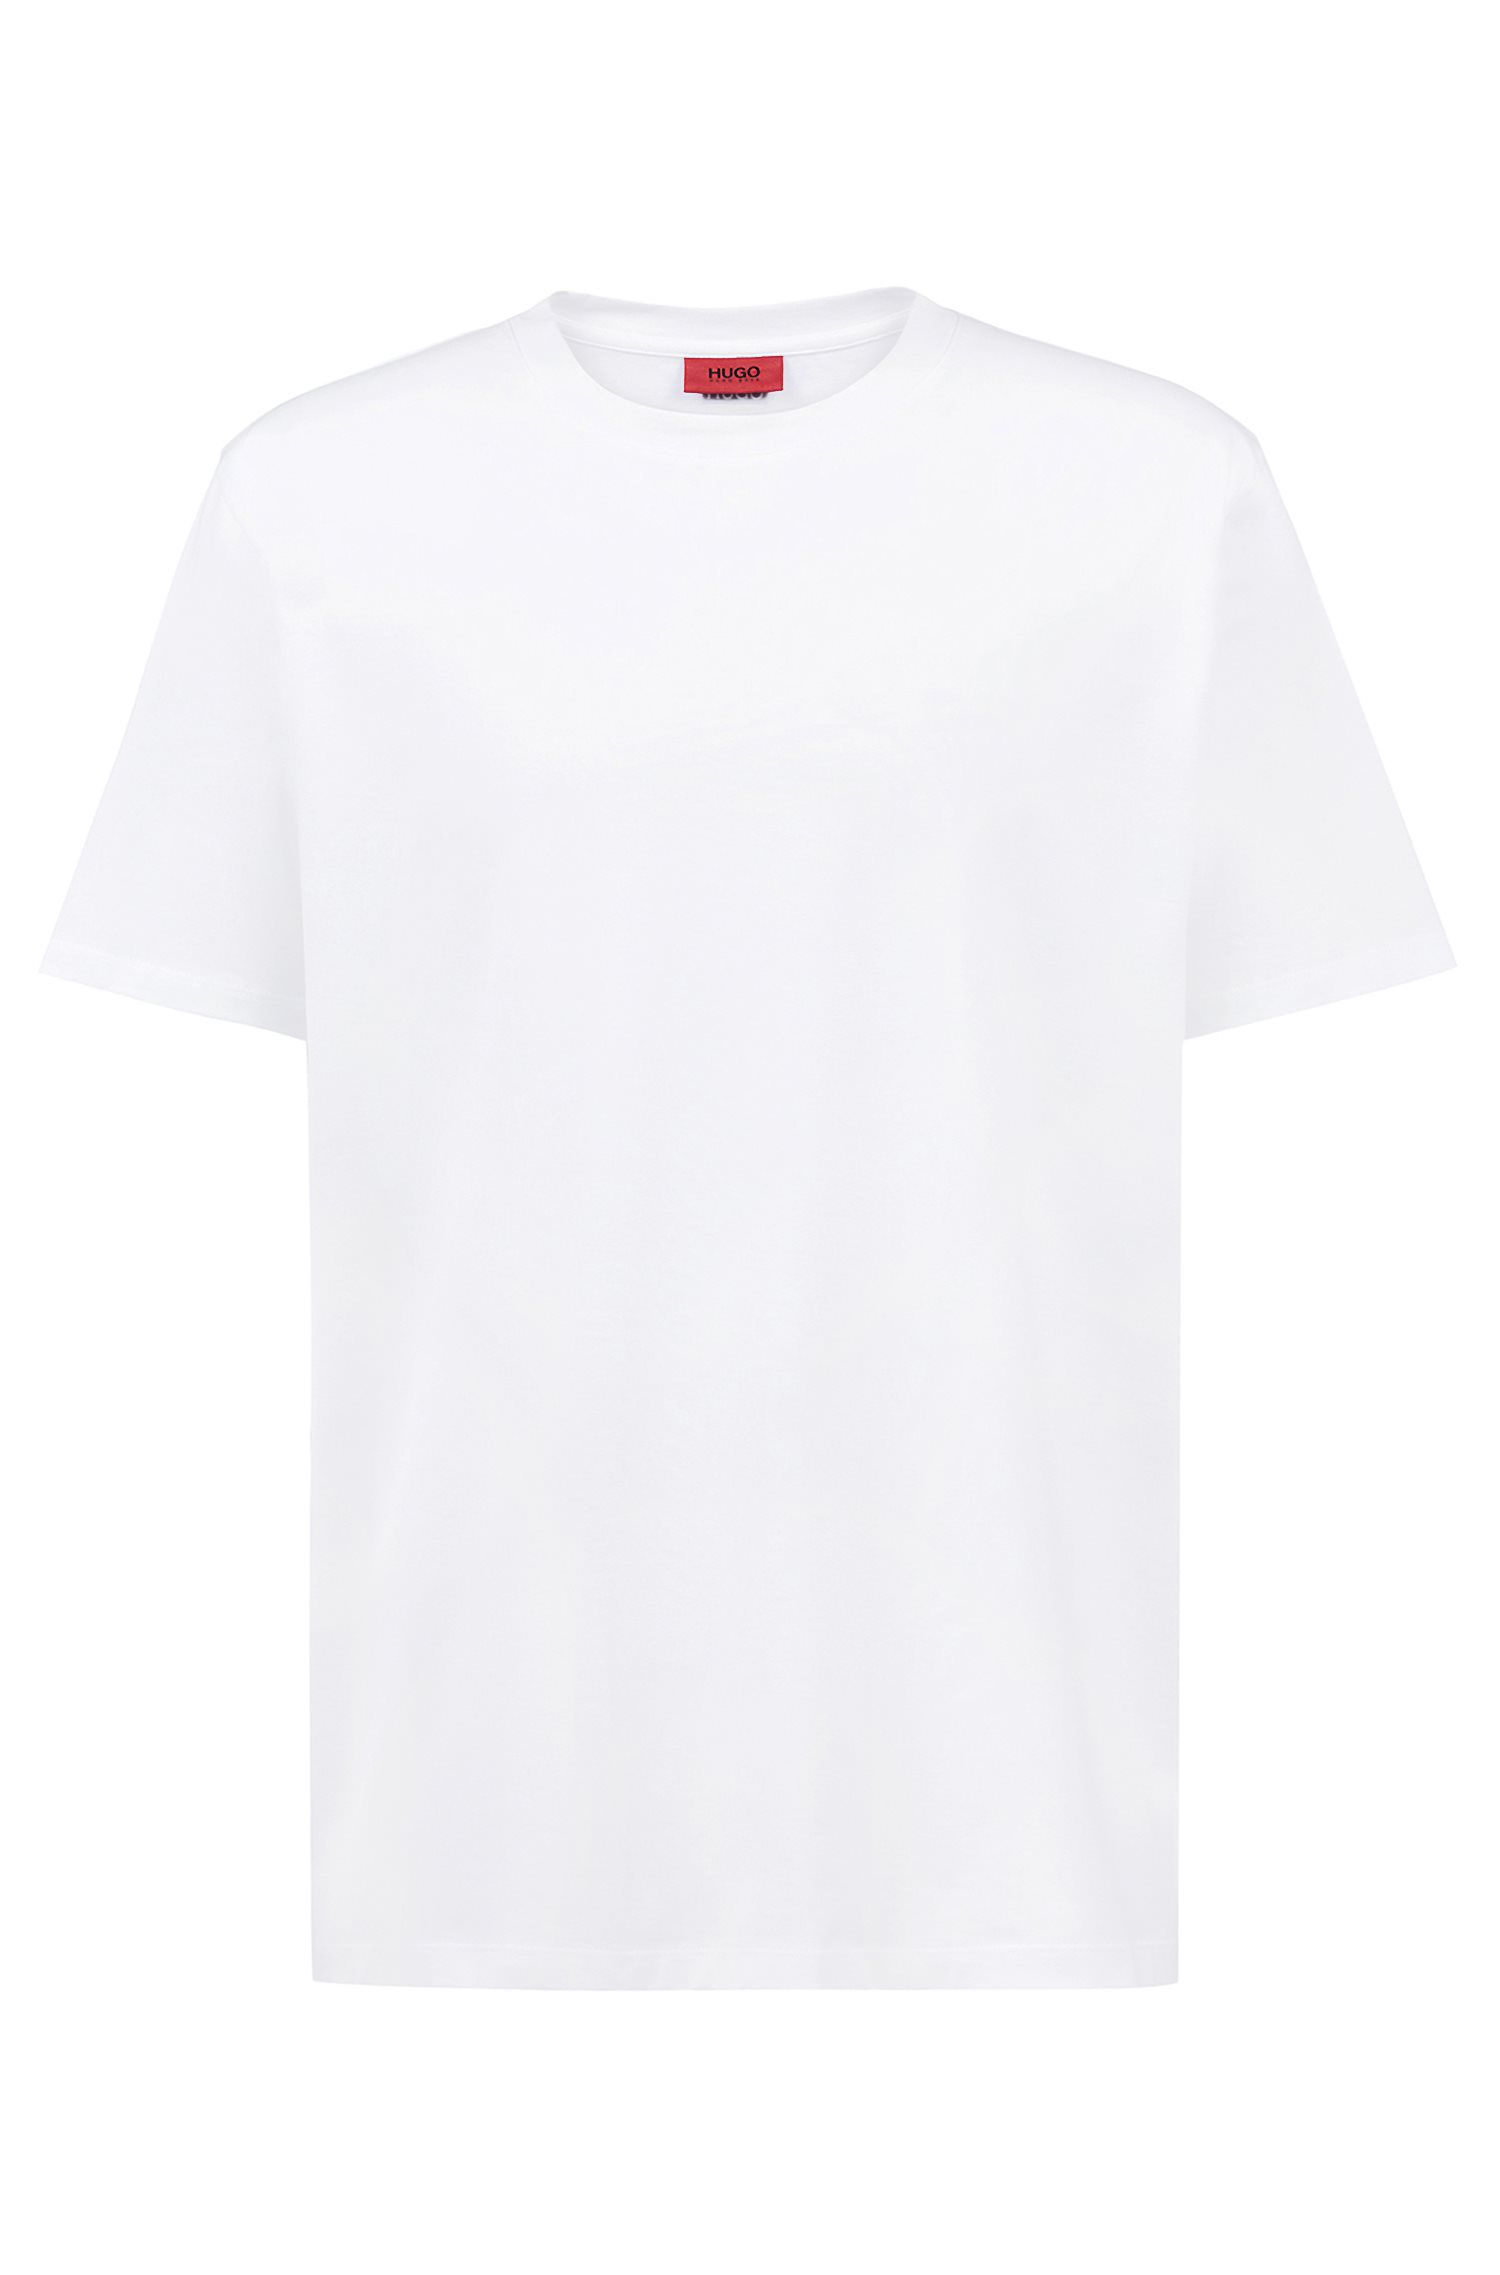 Unisex cotton T-shirt with reversed personalisation, White